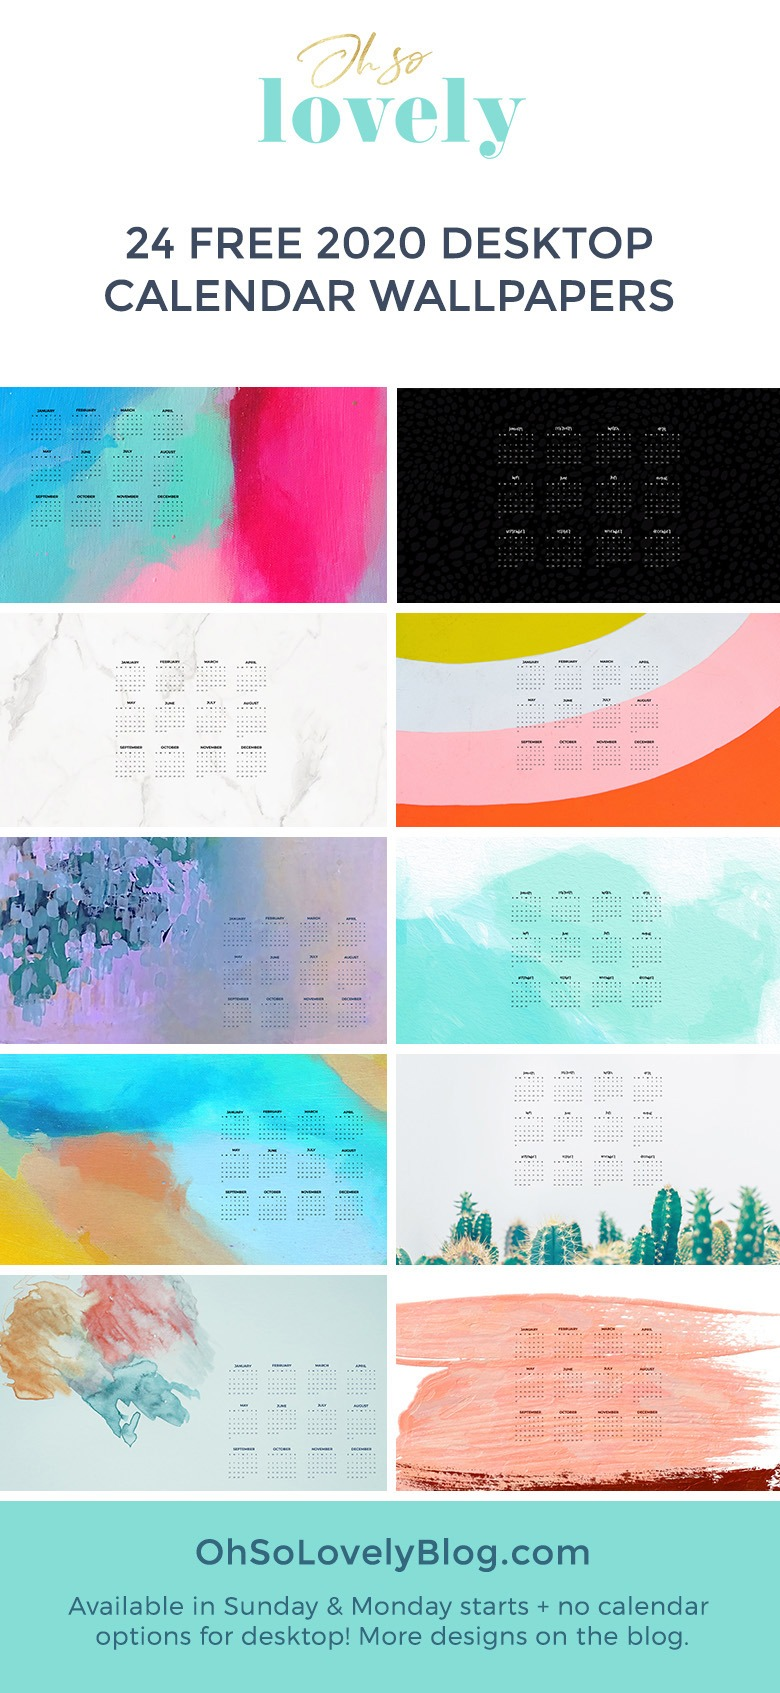 Free 2020 Desktop Wallpapers 24 Designs To Choose From